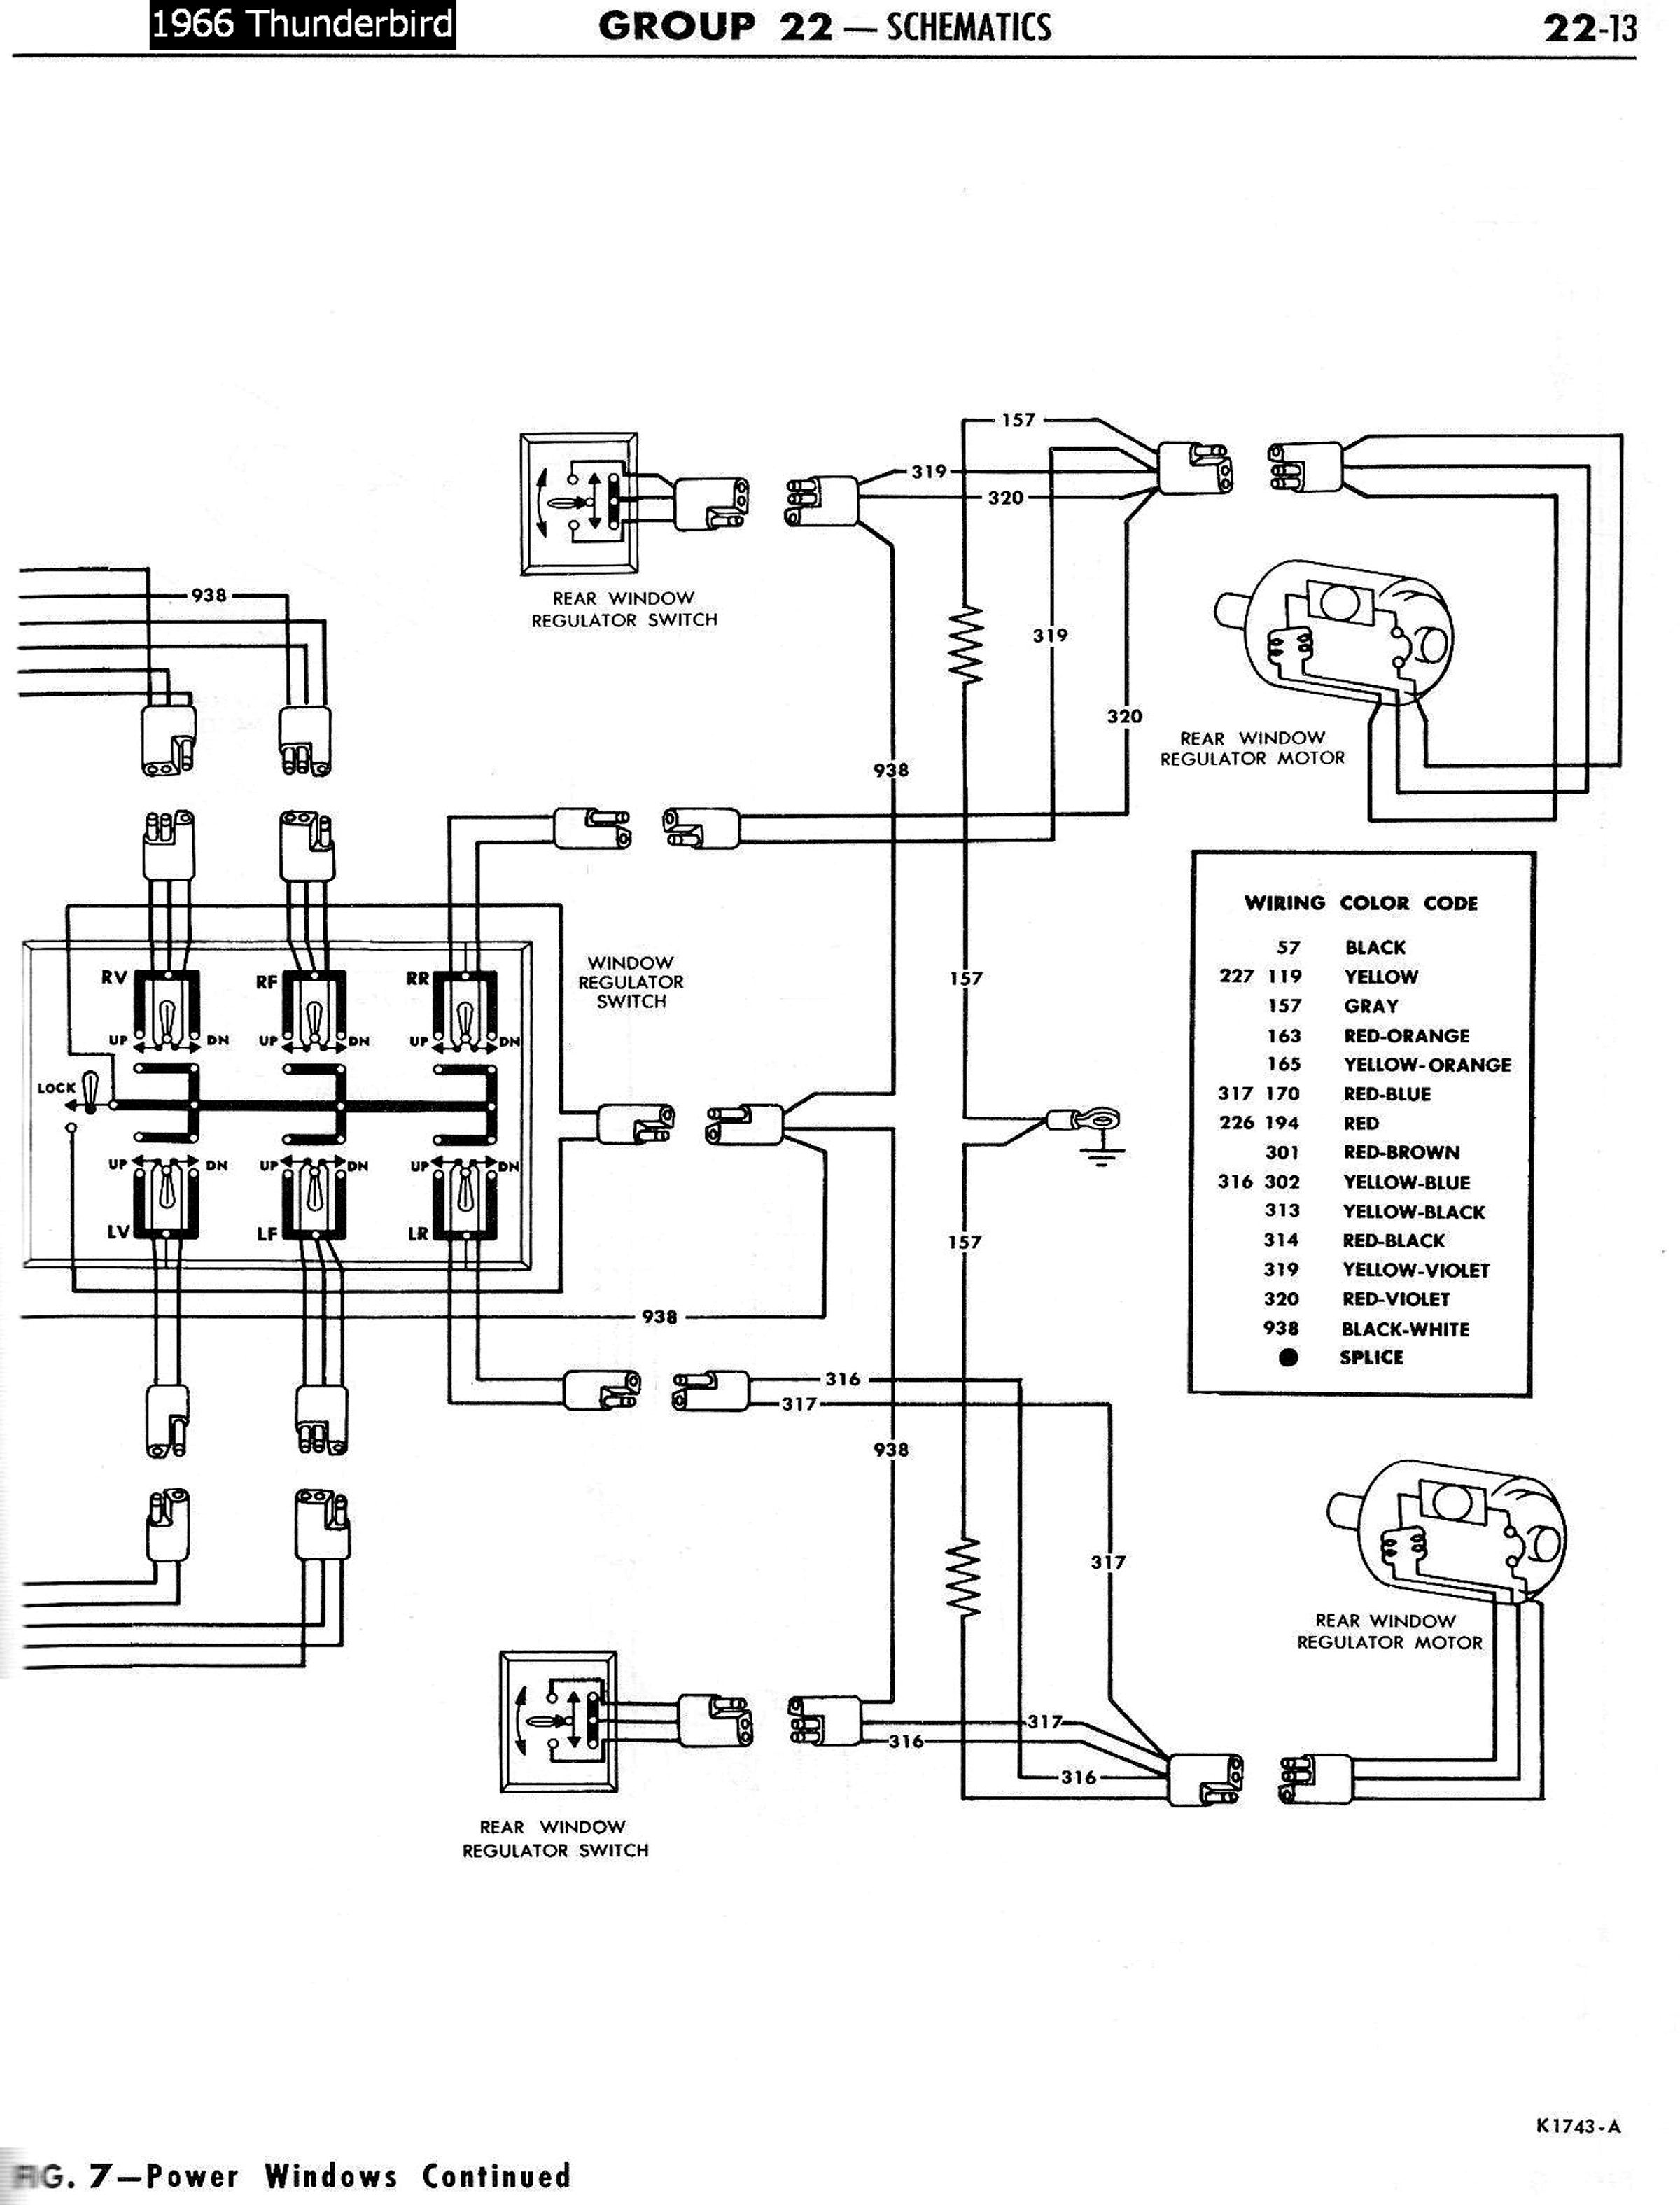 1978 Ford Ranchero Wiring Diagram Library 1966 1968 Turn Signal Online Schematics Rh Delvato Co 1969 F100